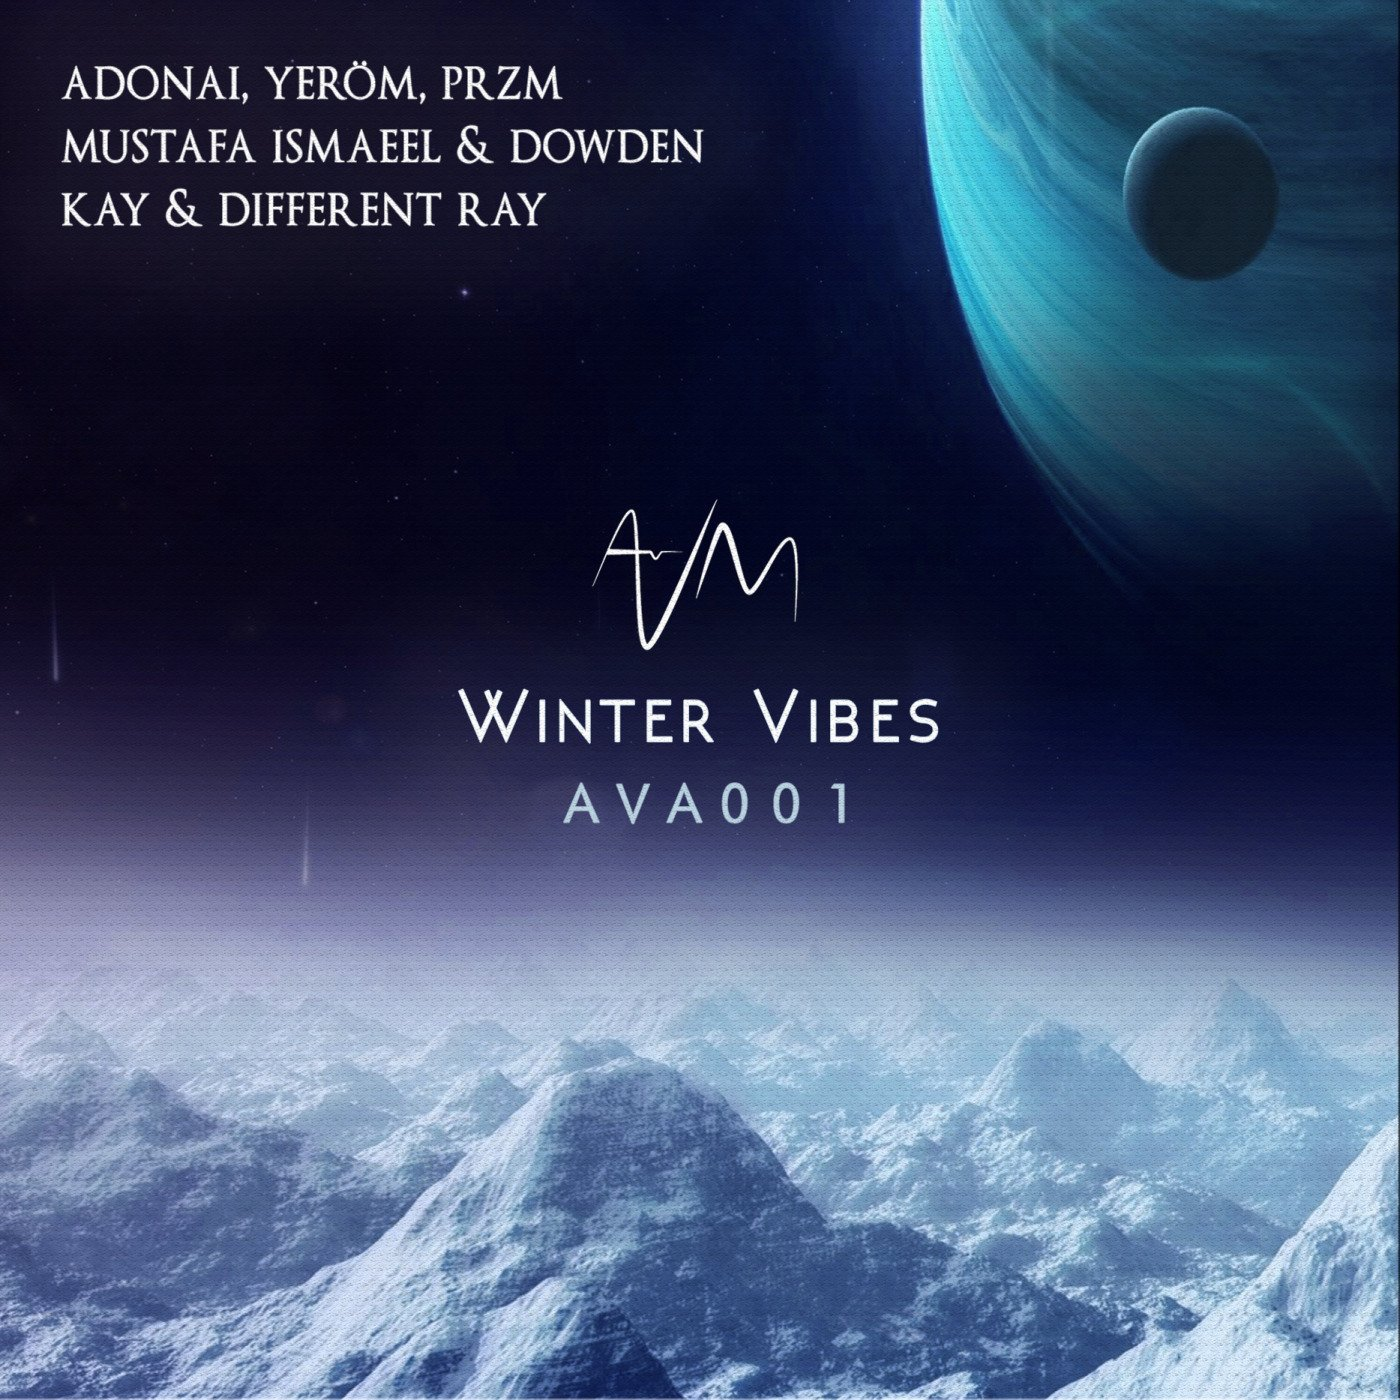 AVA001 – Winter Vibes